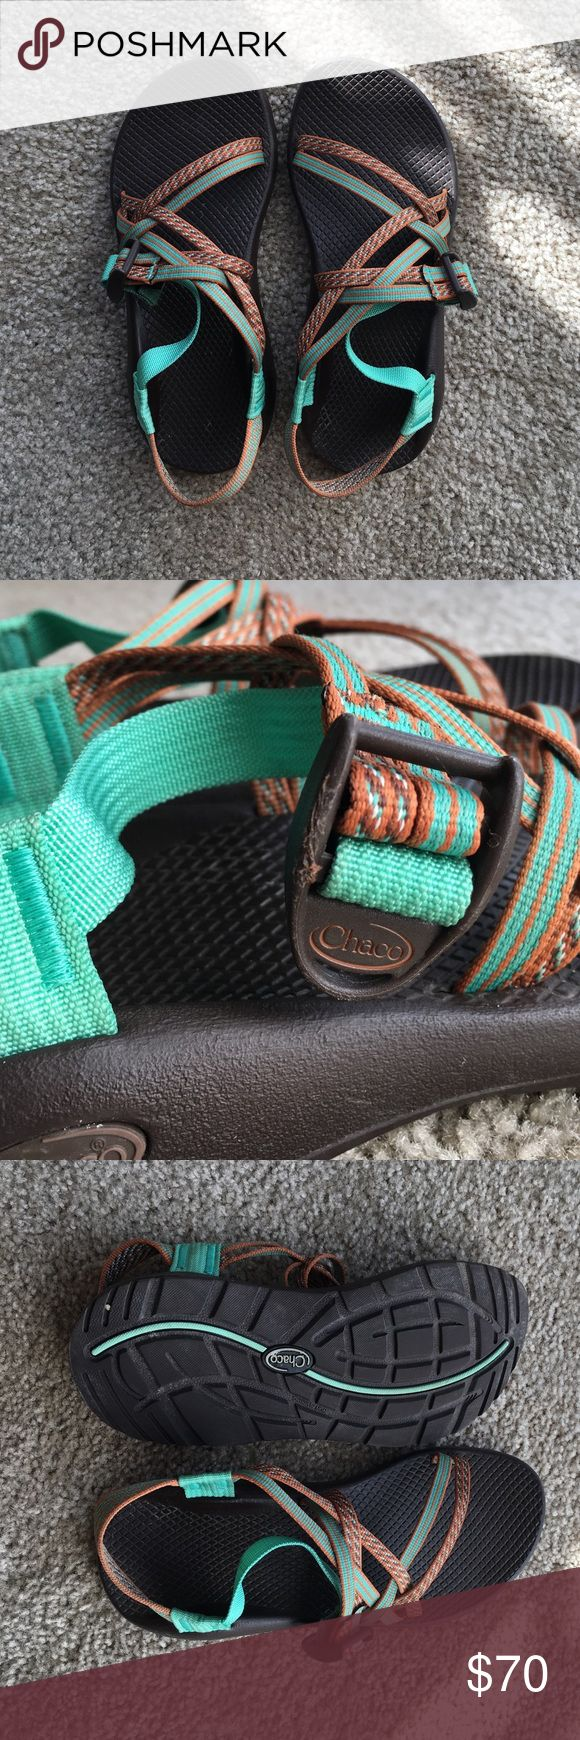 Women's Chaco Size 7 Chacos Shoes Sandals